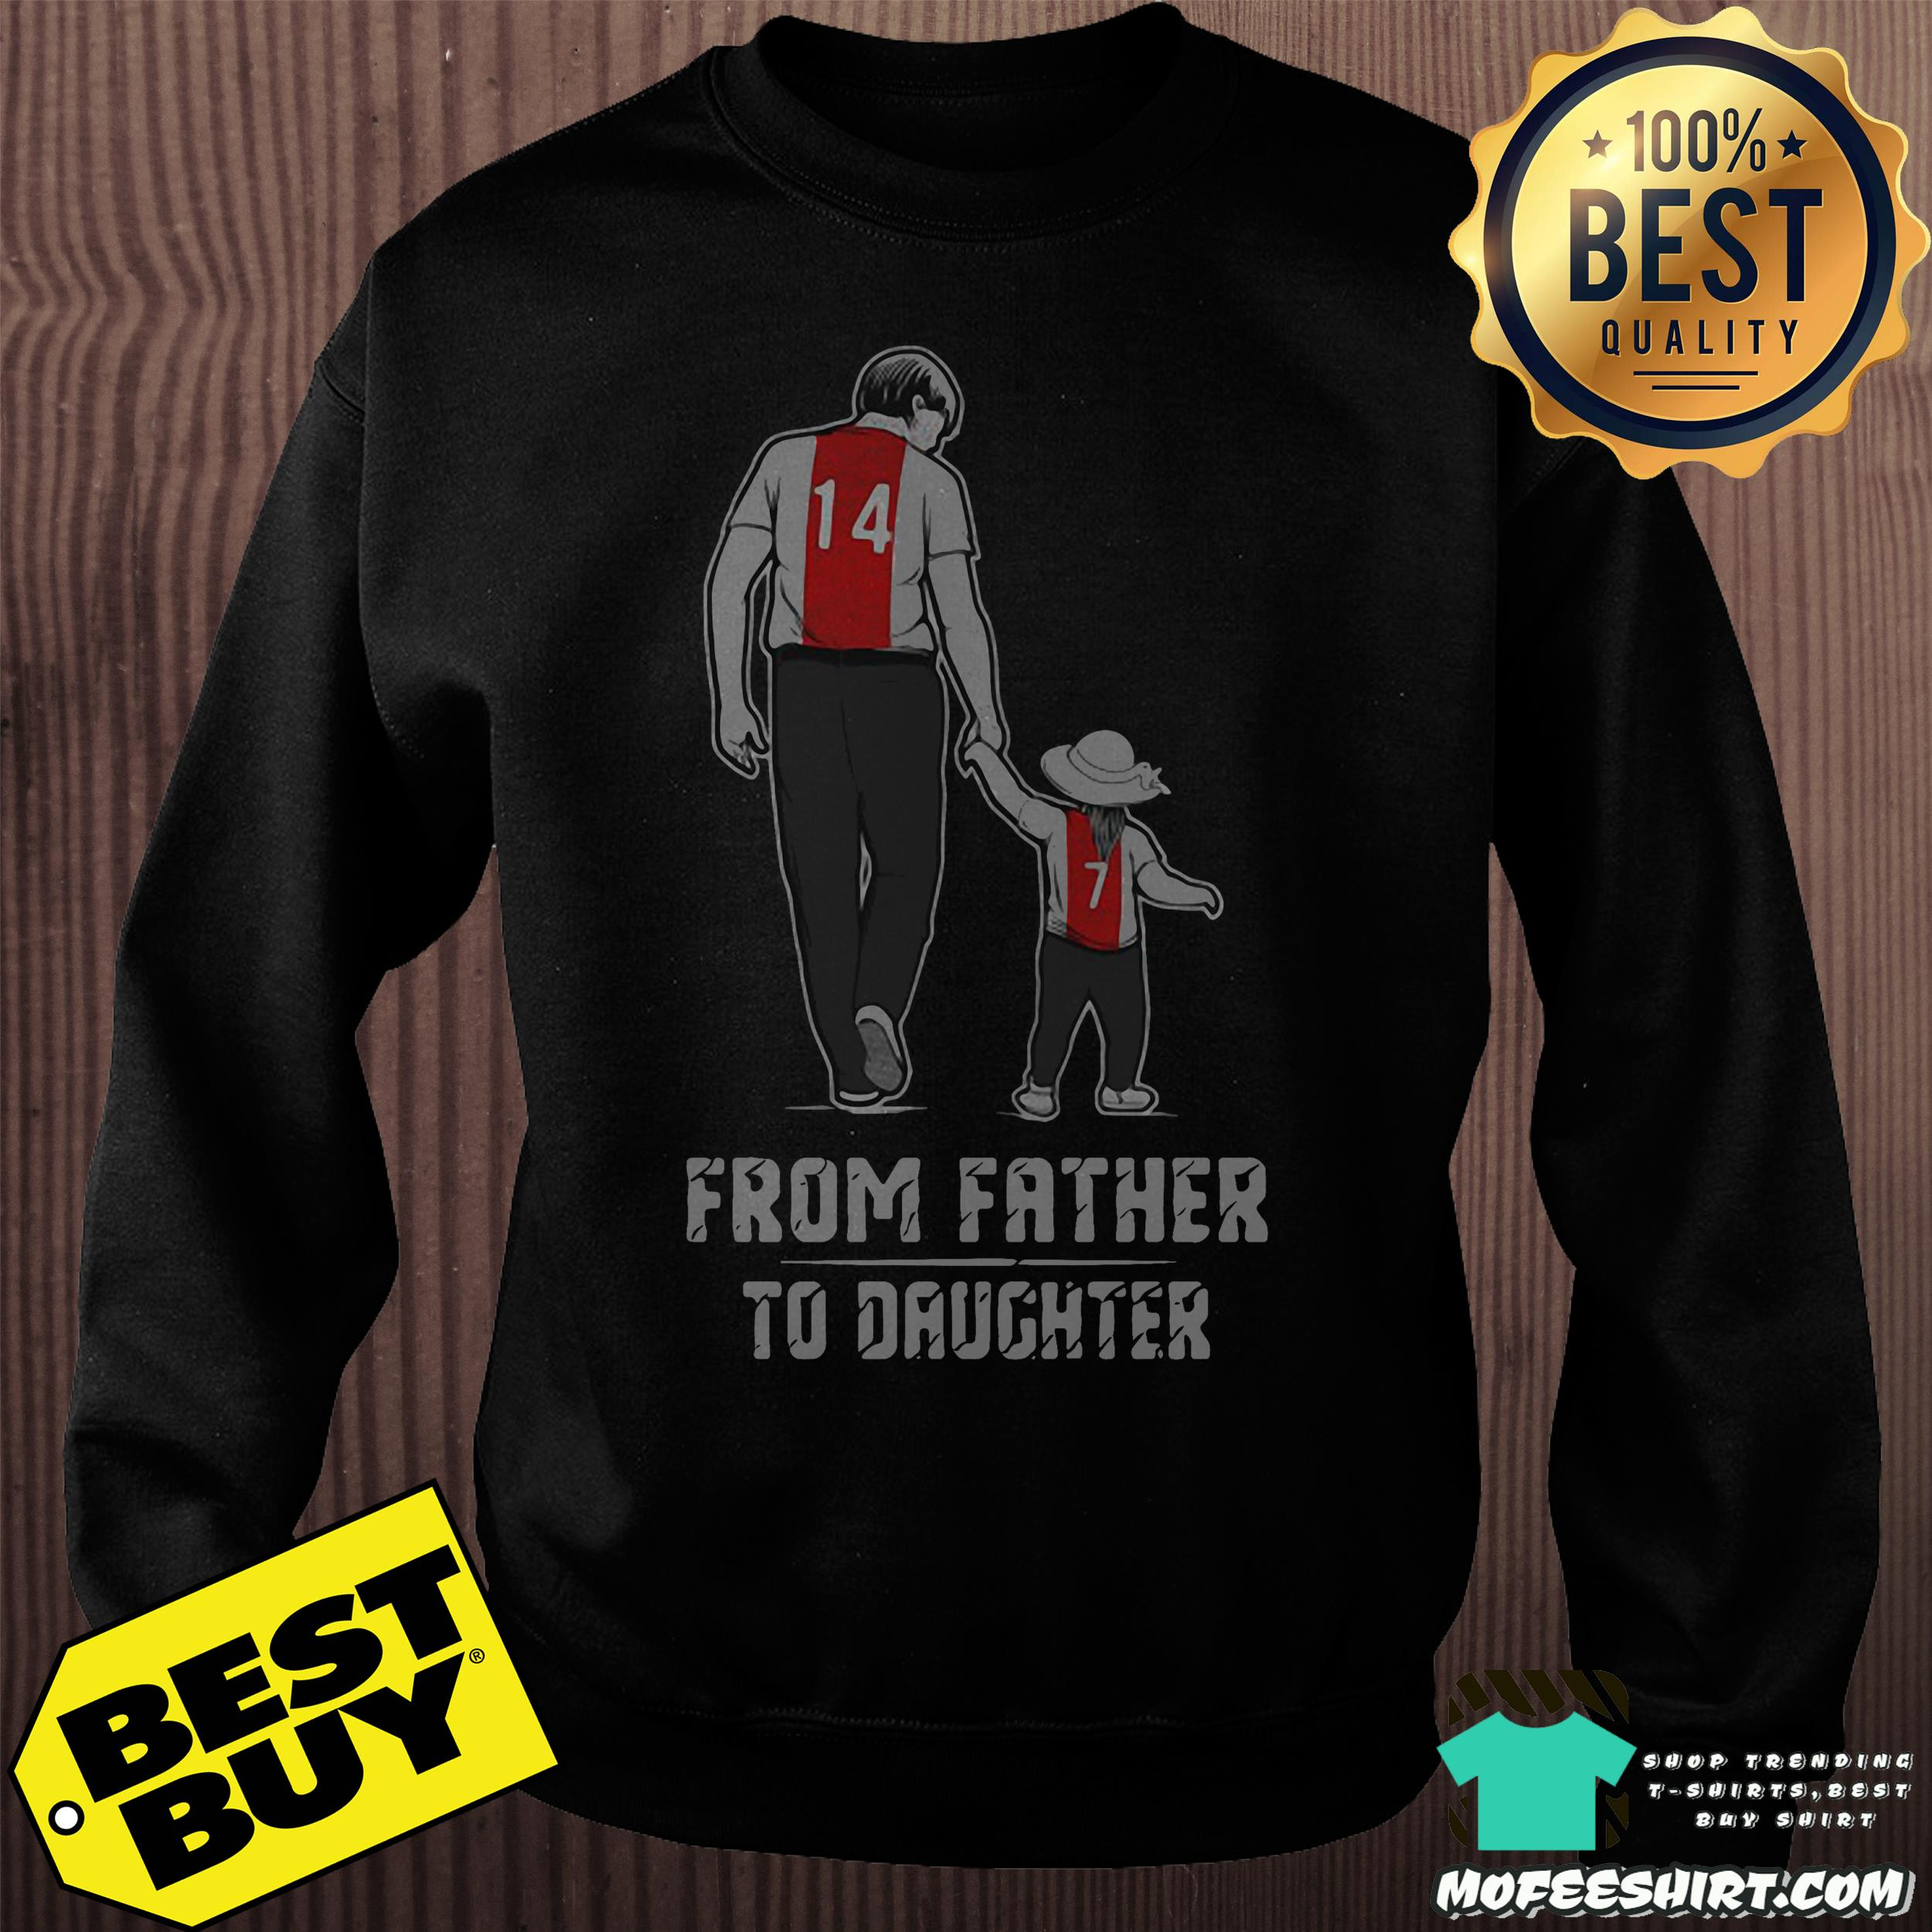 From father to daughter sweatshirt